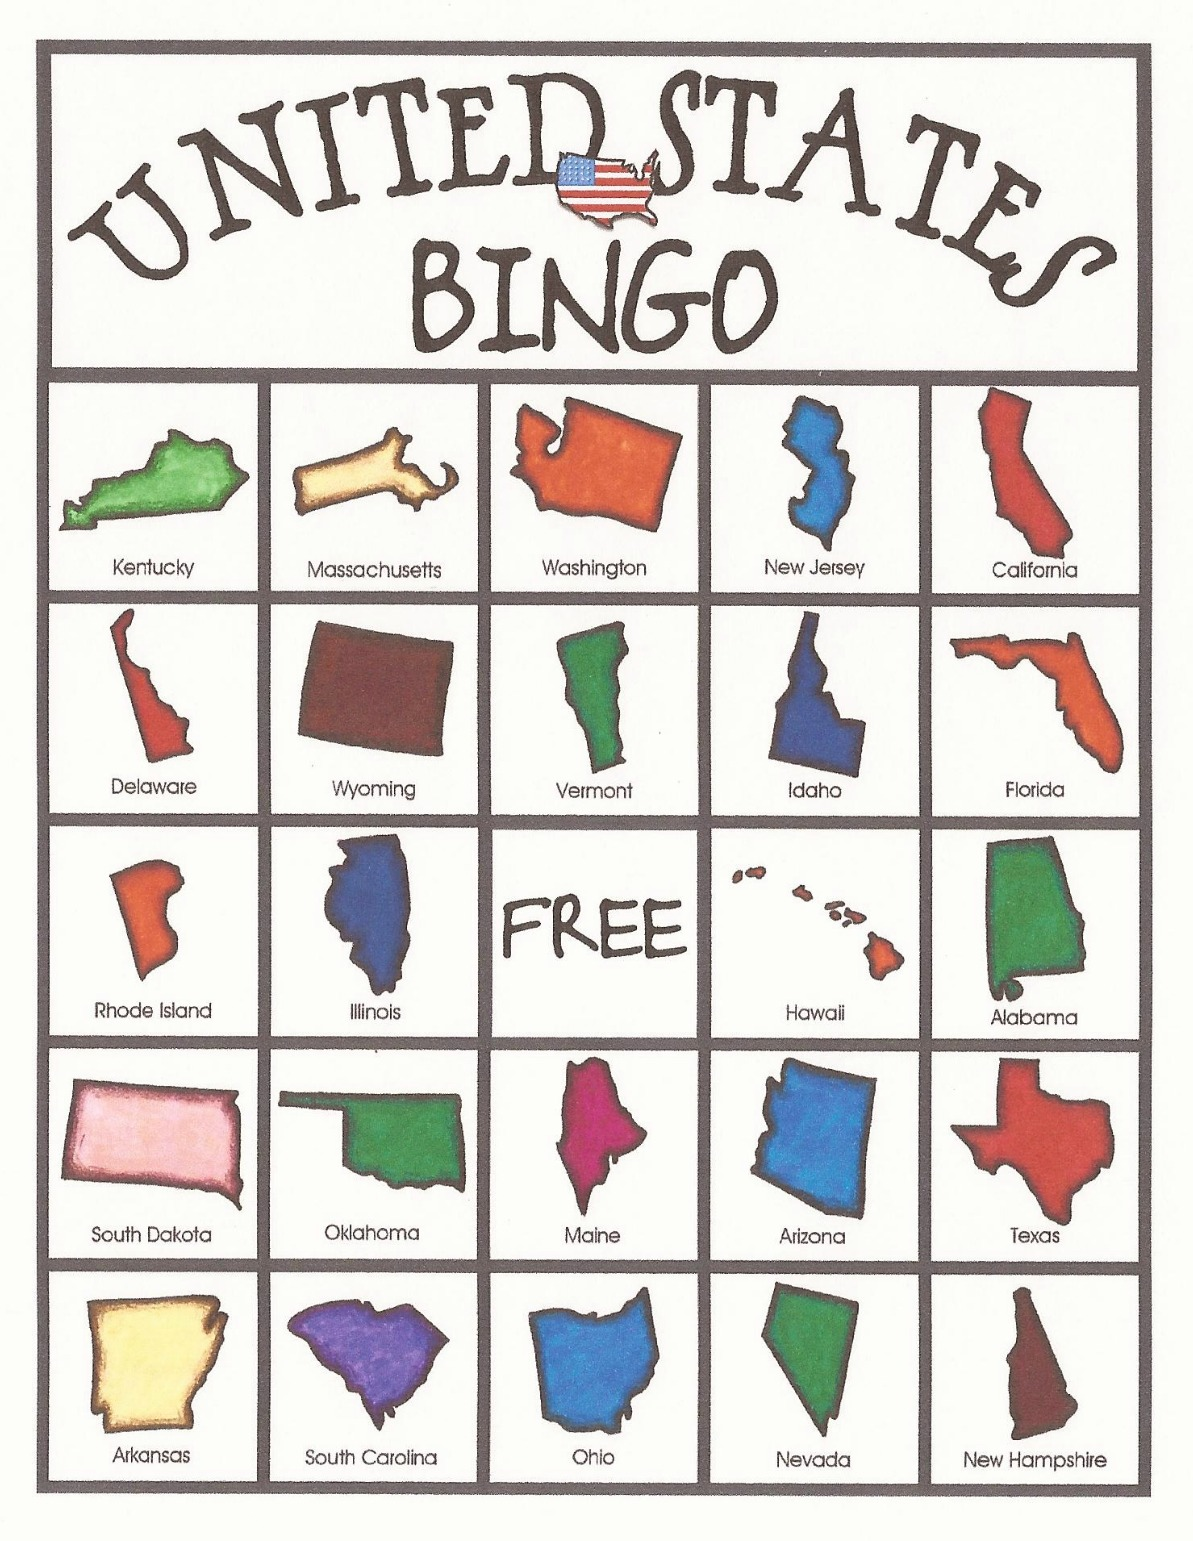 bingo fun games